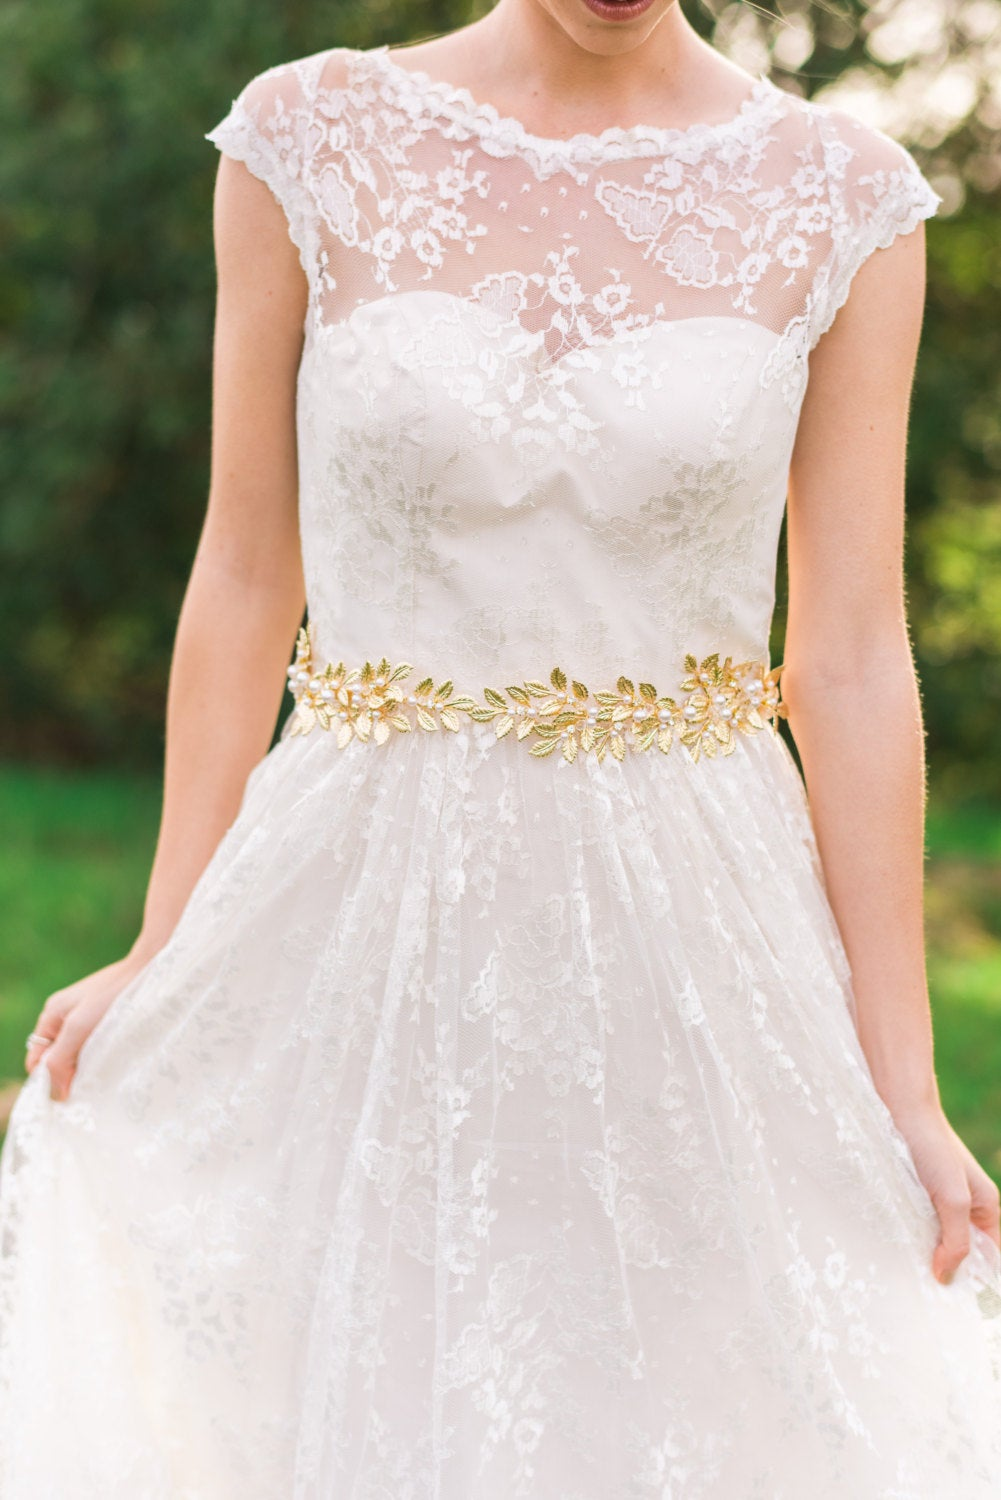 7 Beautiful Bridal Sashes & Belts